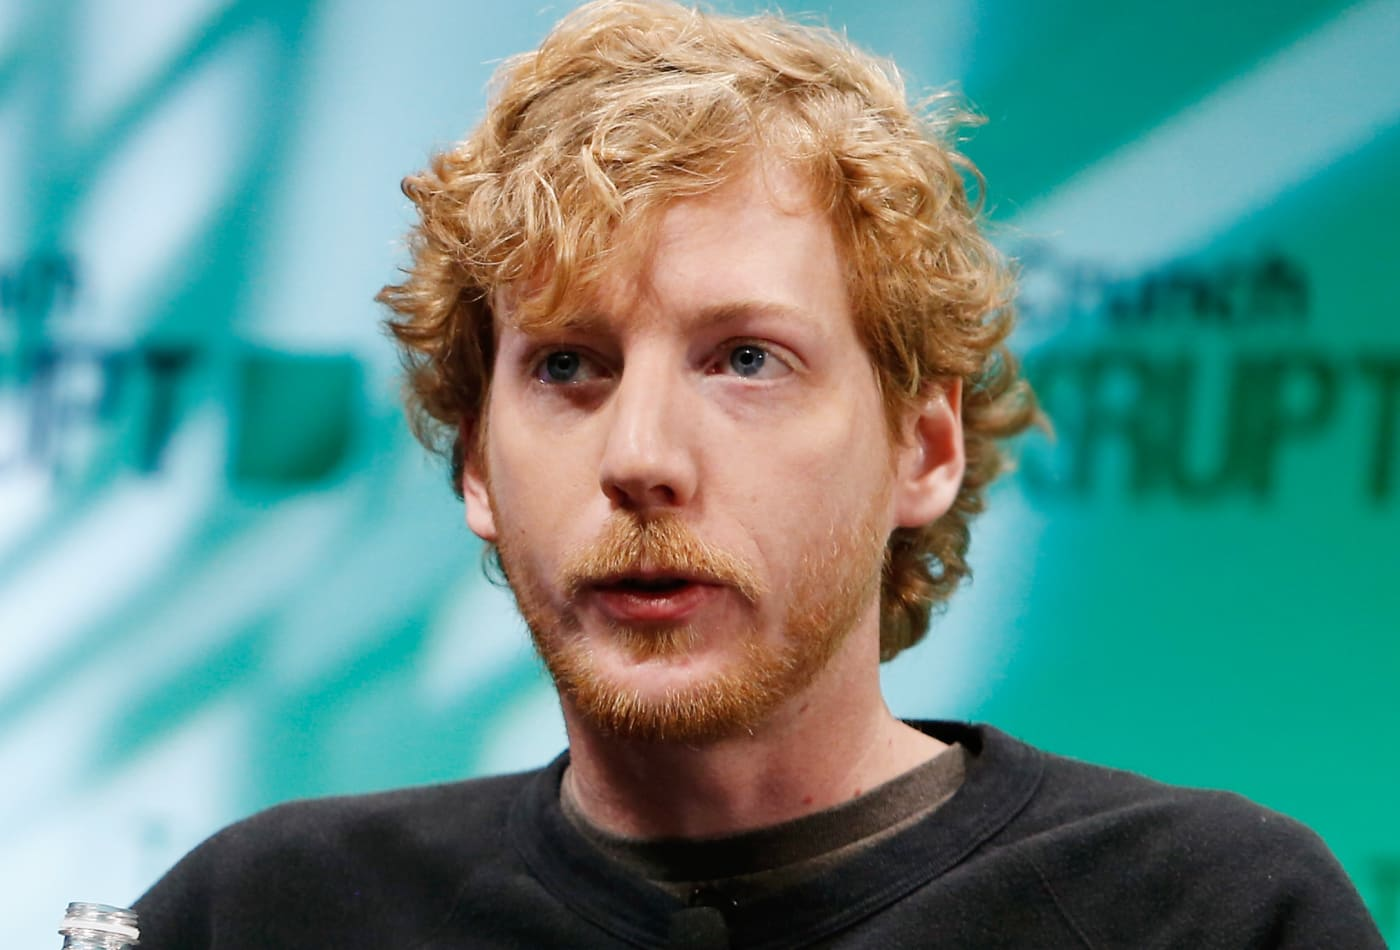 Chris Wanstrath co-founded GitHub, which Microsoft bought for billions